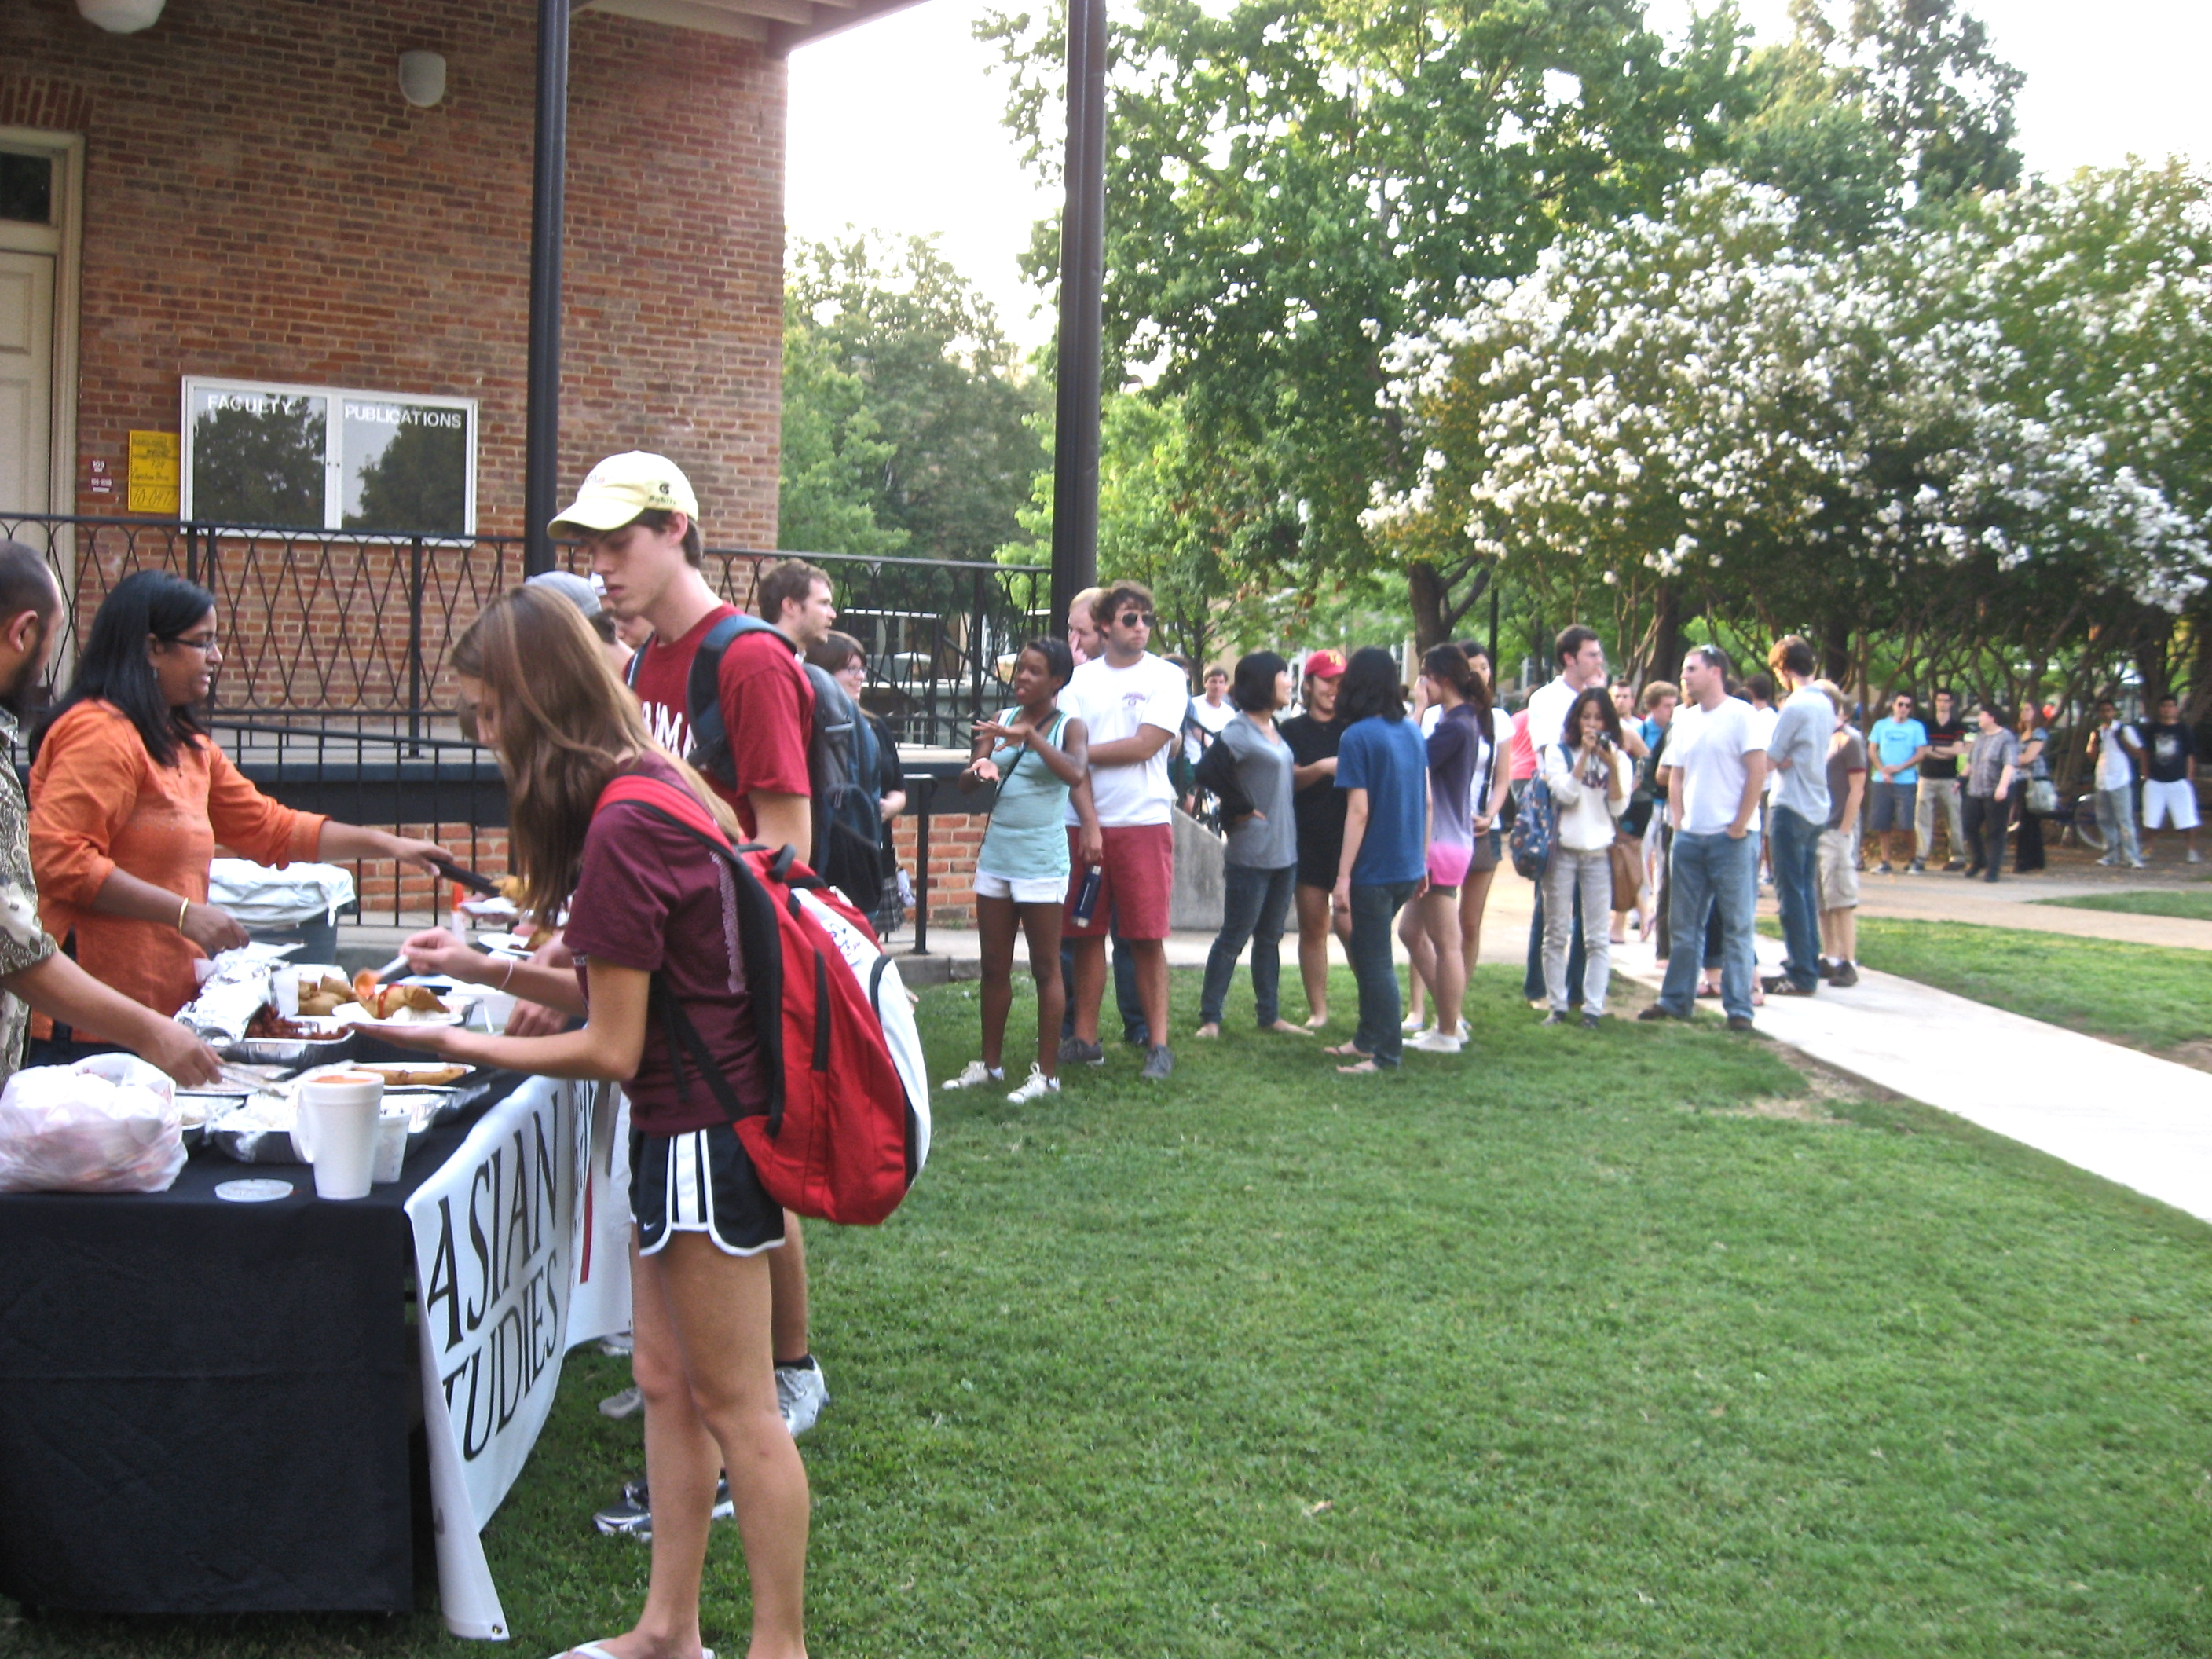 students lined up for food outside Manly Hall